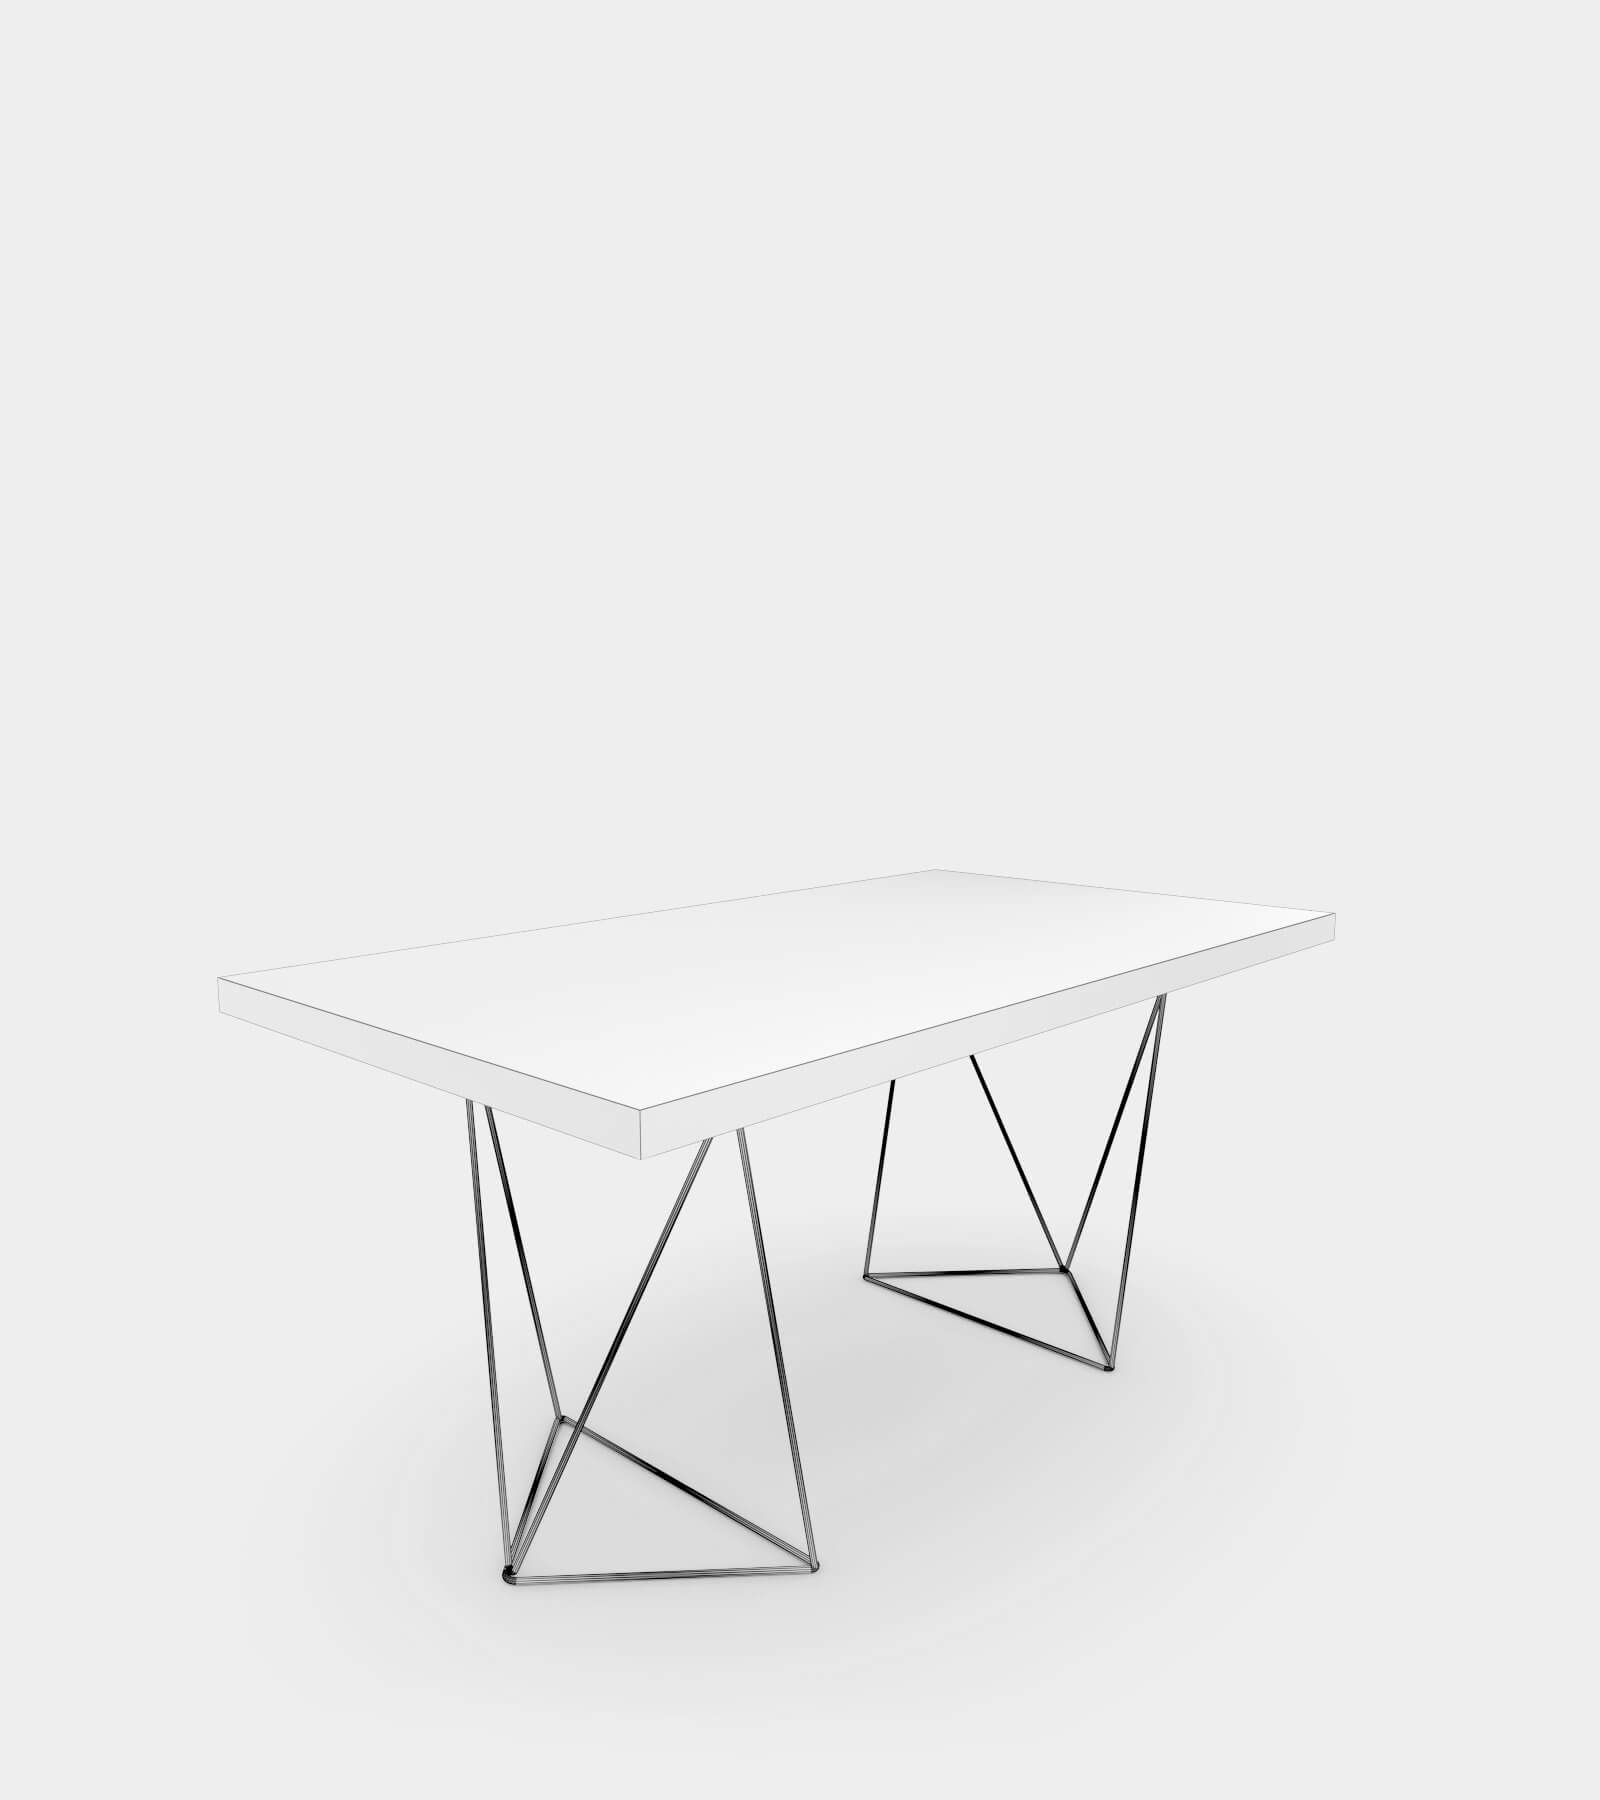 Walnut dining table with chrome legs-wire-1 3D Model